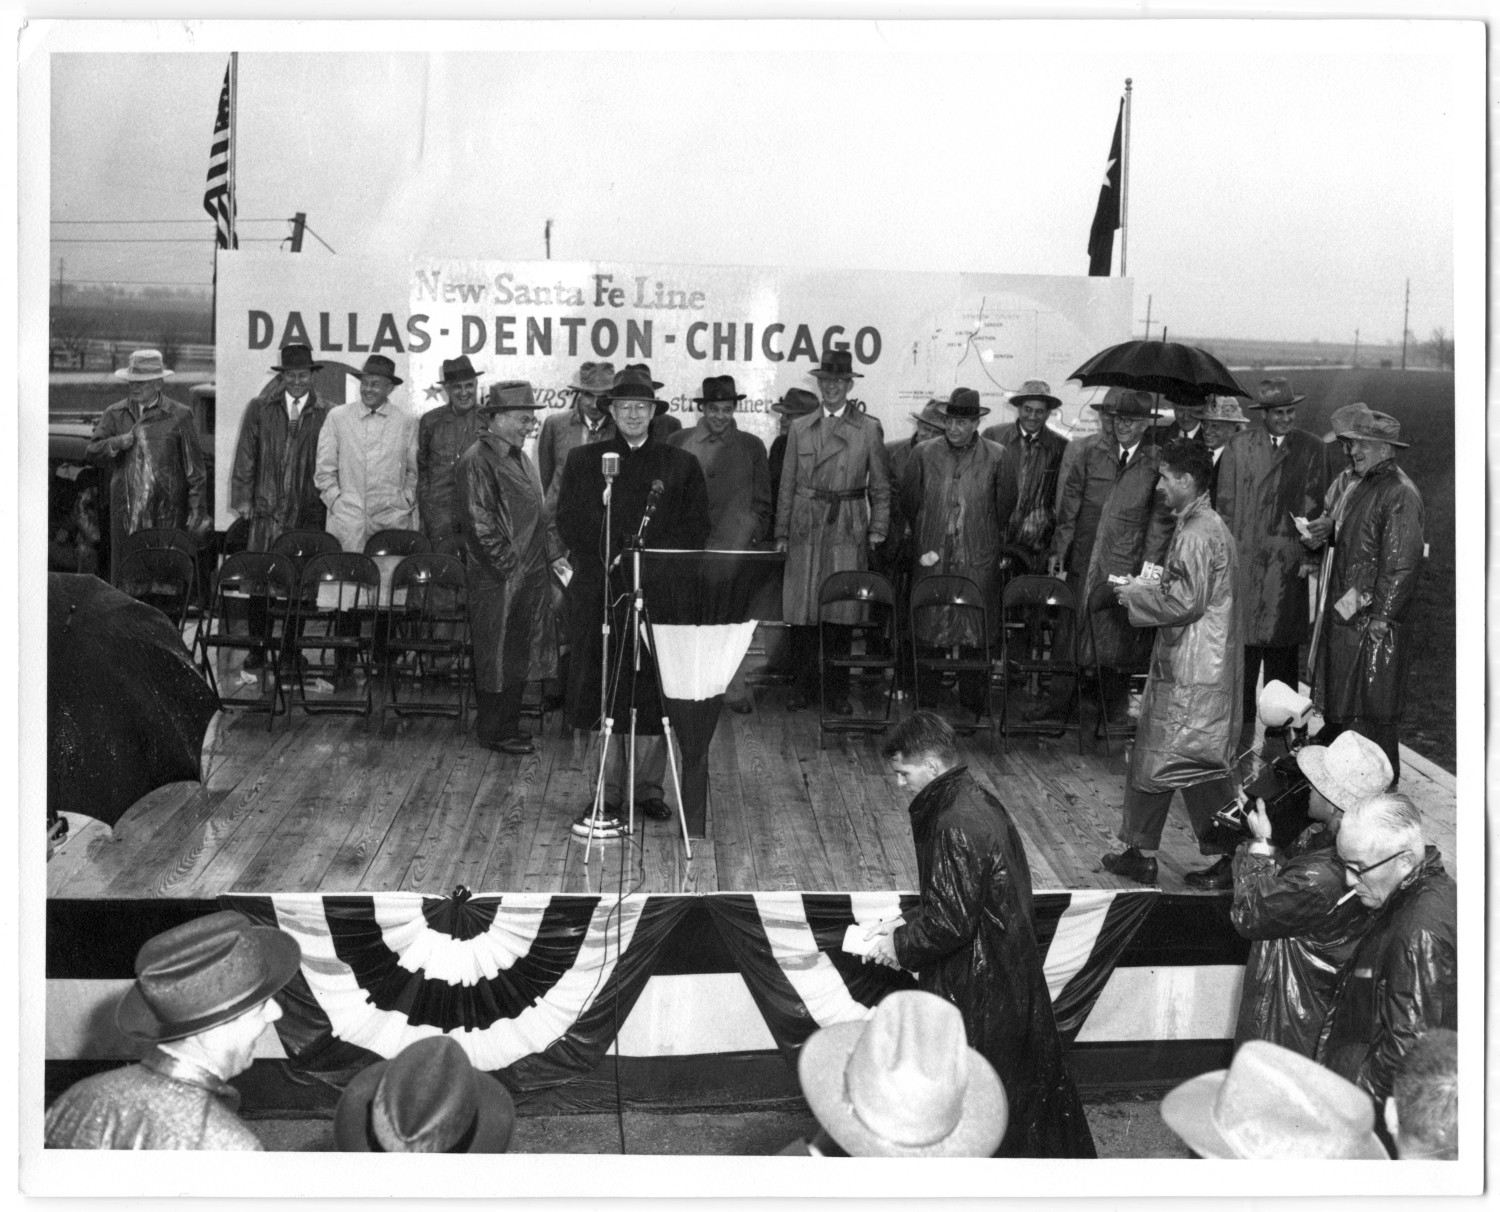 Inauguration of the Santa Fe Railroad Line, Inauguration of the Santa Fe Railroad Line linking Dallas, Denton, and Chicago. It was raining and the photo was taken in north Dallas, near Garland. Among the men heading the groundbreaking ceremony were Railroad president Fred Gurley, Jerome Crossman, president of the Dallas Chamber of Commerce, E. W. Morrison, a Denton businessman who strongly supported the line, Dallas Mayor R. L. Thornton, and Denton Mayor J. L. Yarbrough.,